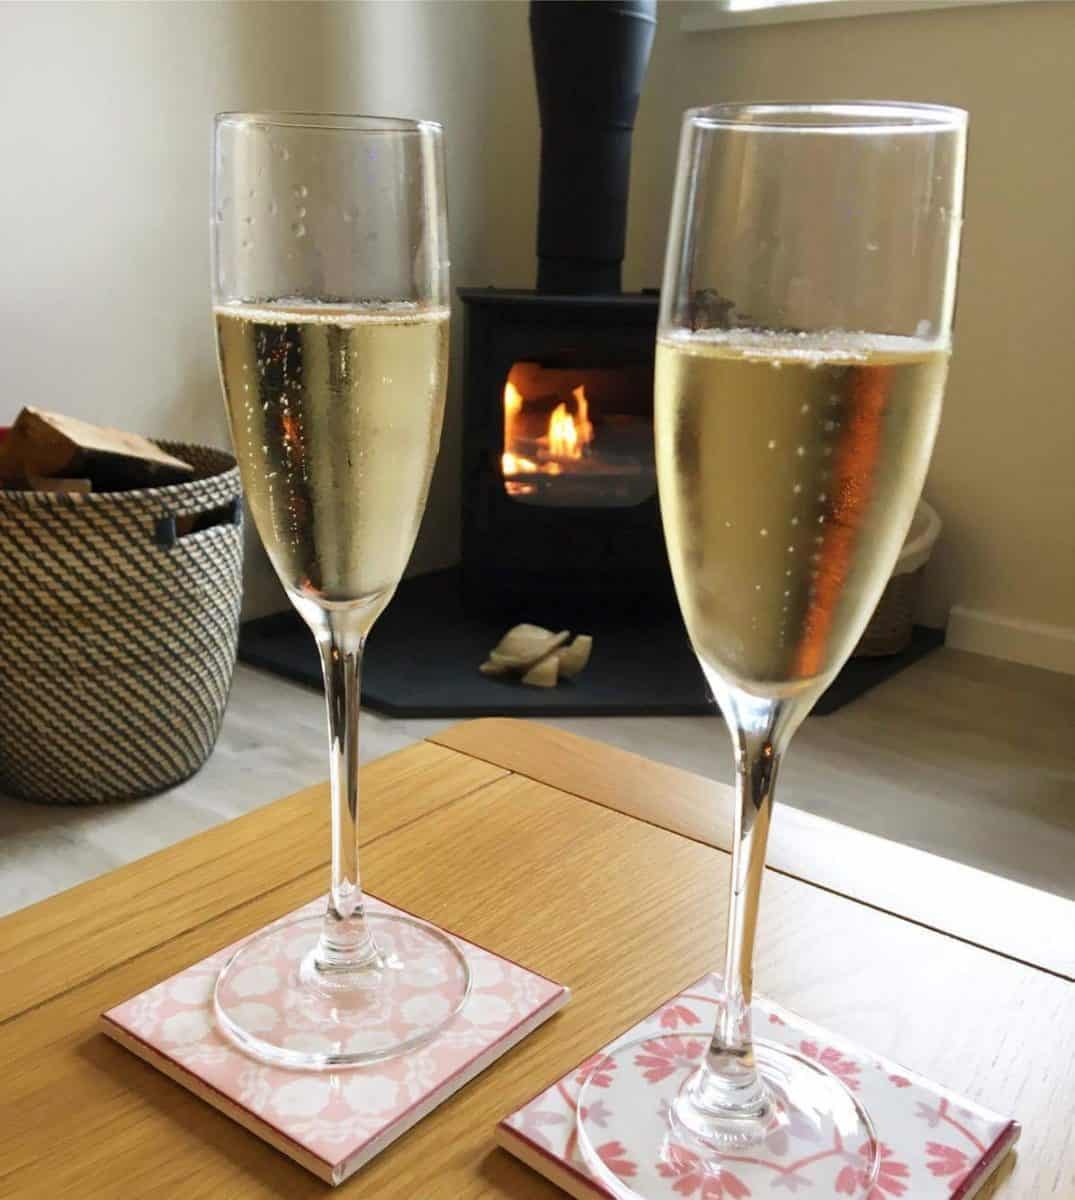 karens Kottages - free wine - drake stone cottage - stanegate cottage - northumberland - campervan hire